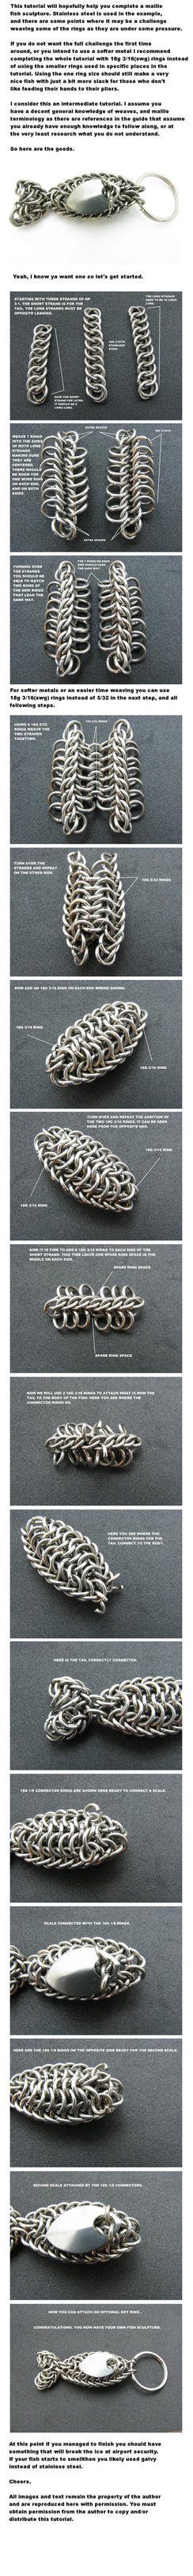 Fish Key Ring Tutorial by BorealisMetalWorks